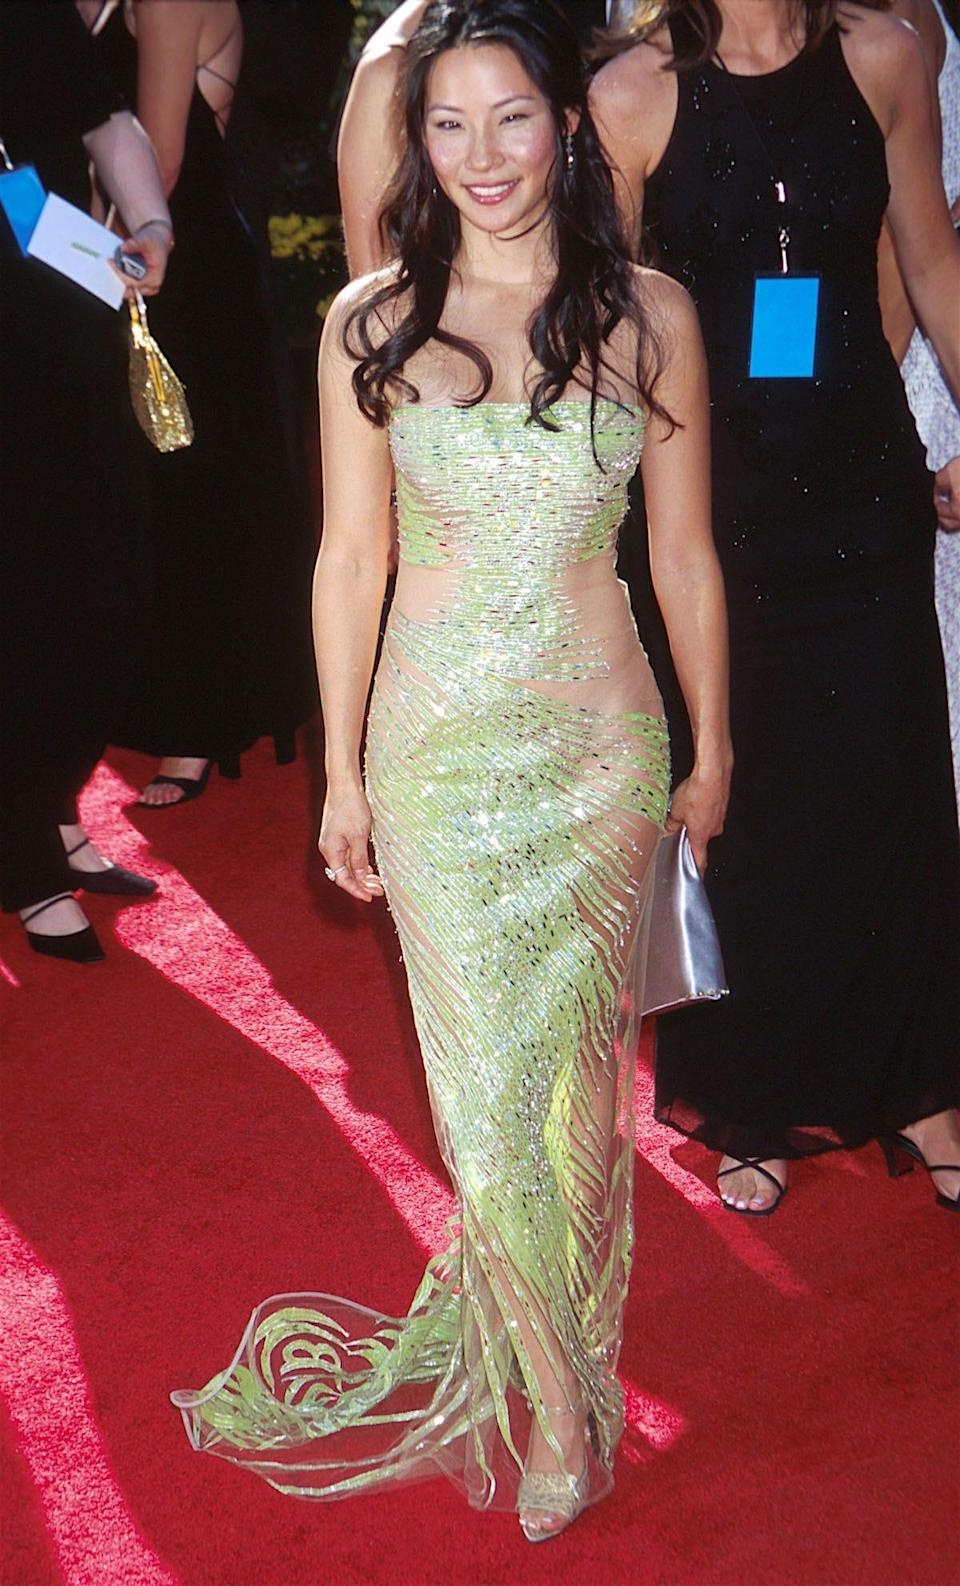 Lucy Liu wears a green partially sheer gown at the Emmys in 2000.